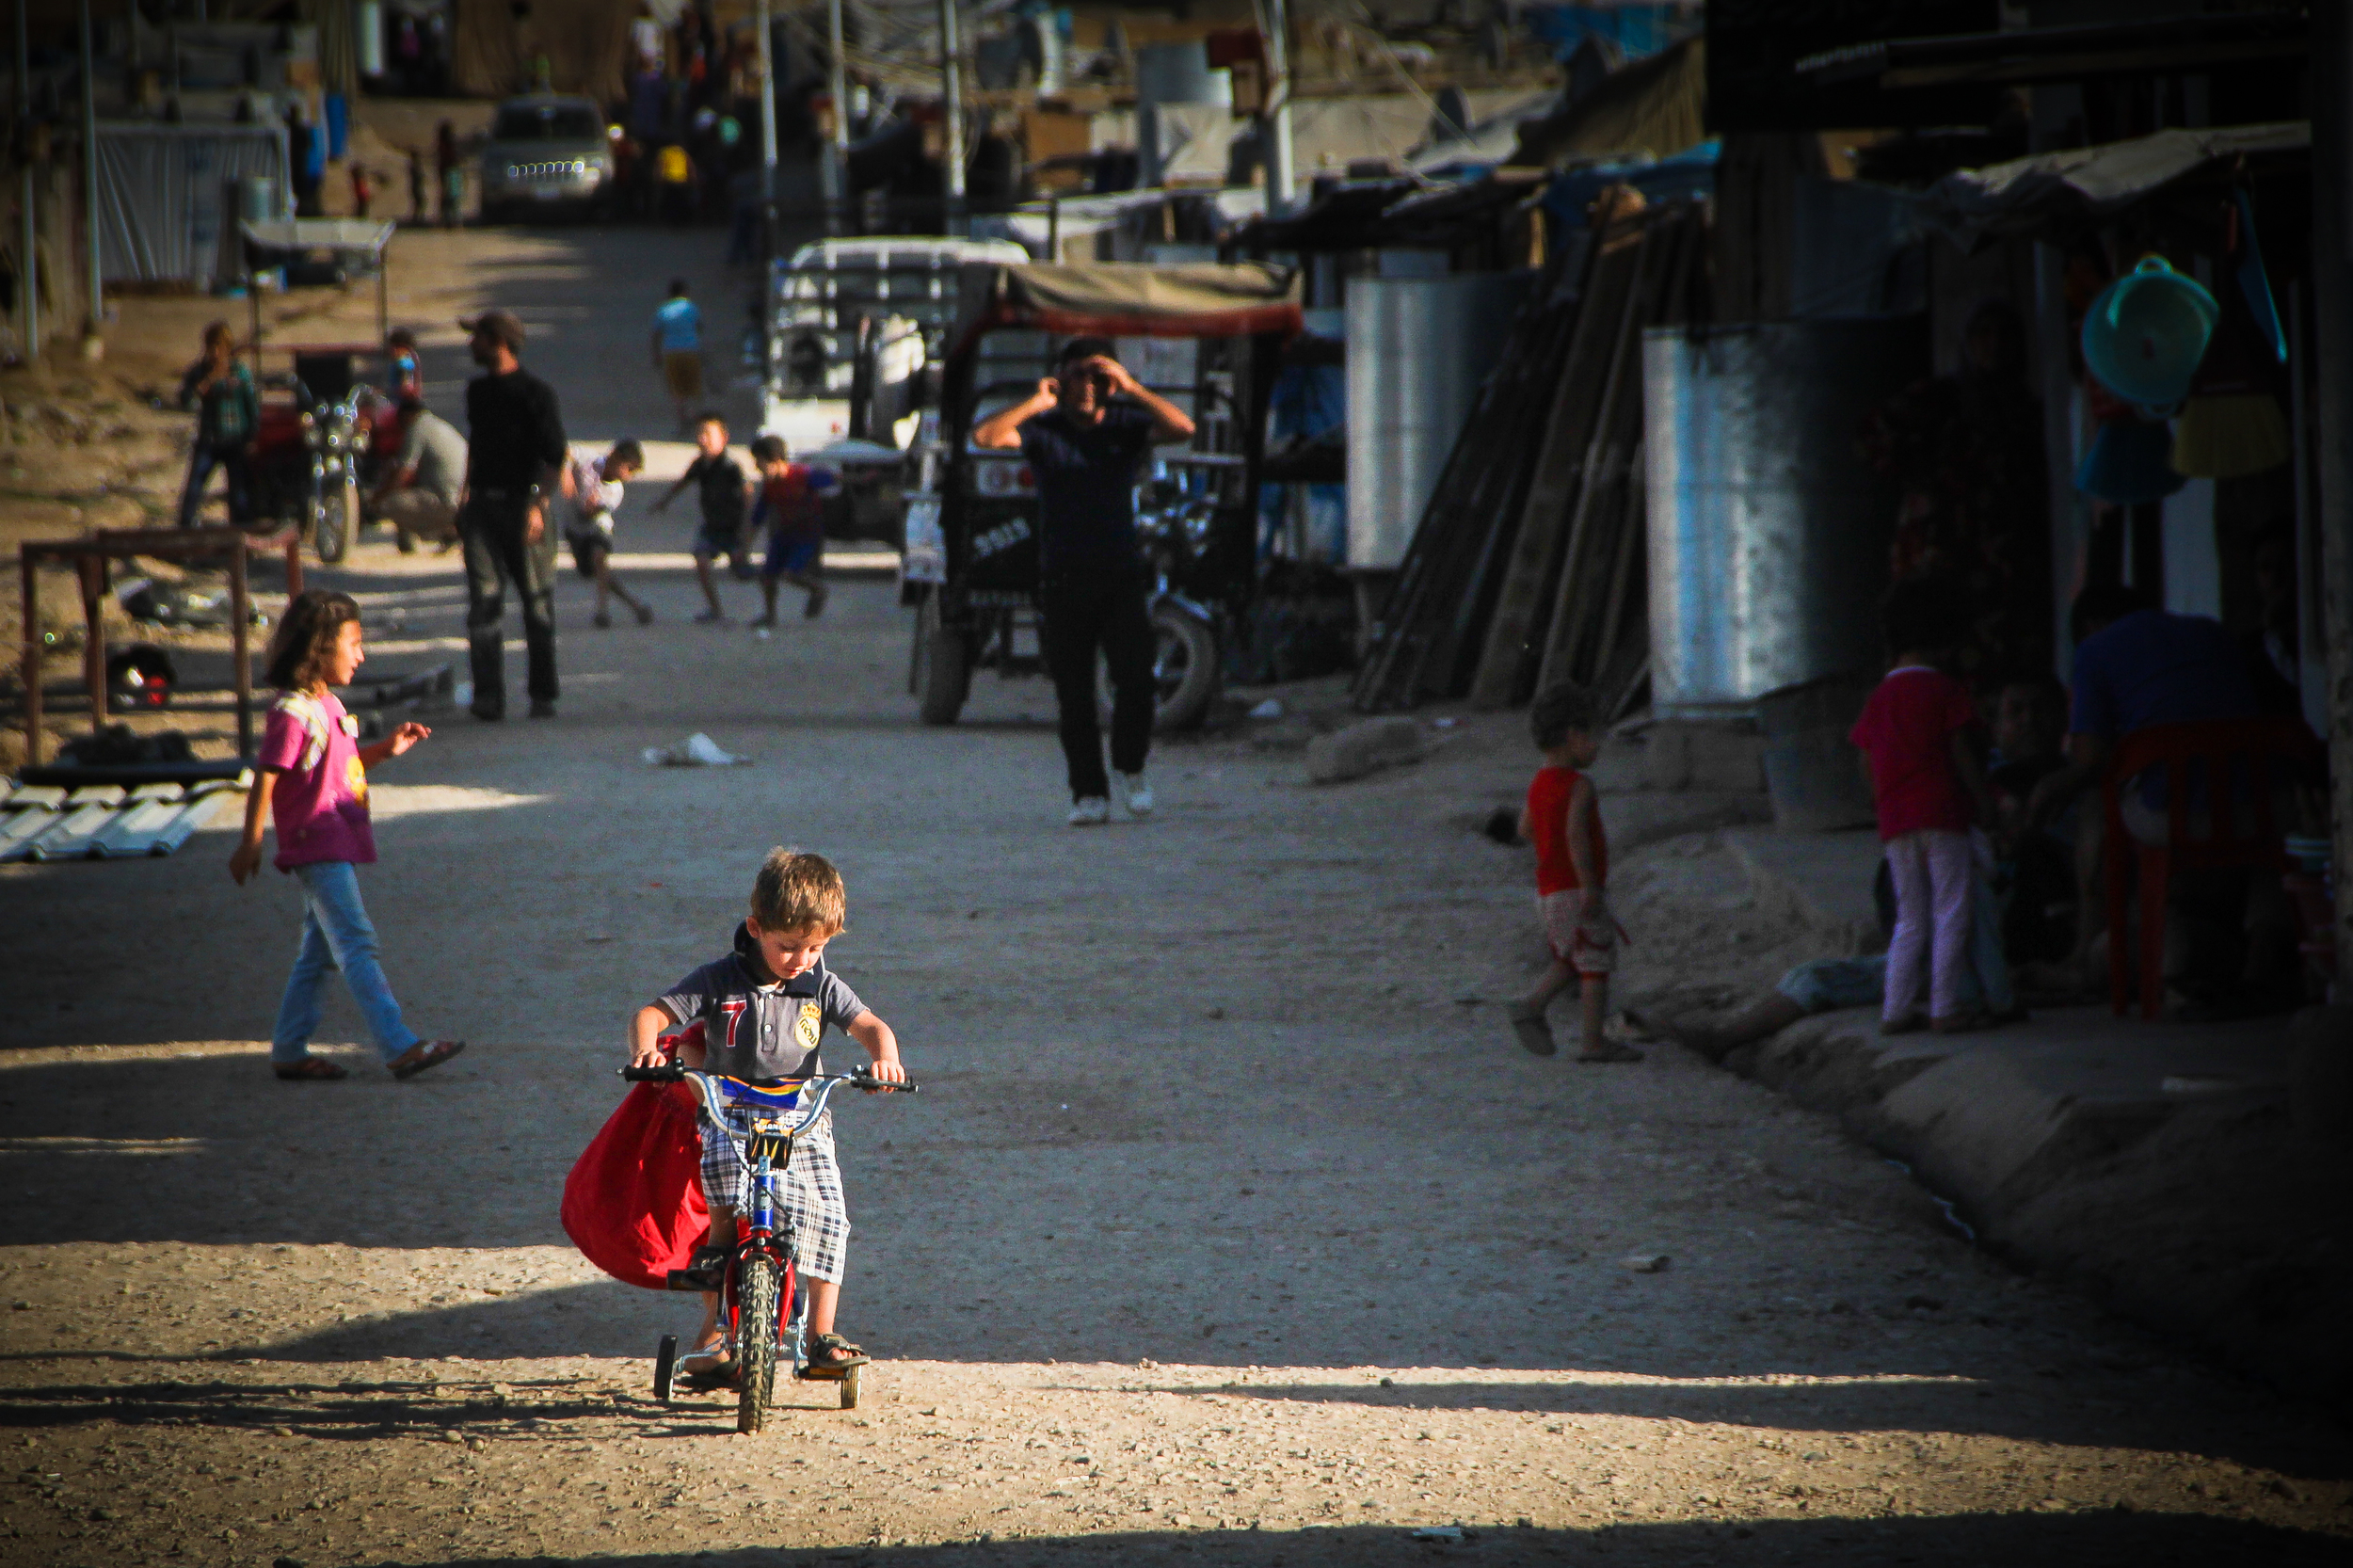 A child in Domiz refugee camp, Iraqi Kurdistan / For the Iraq mission of the International Organization for Migration